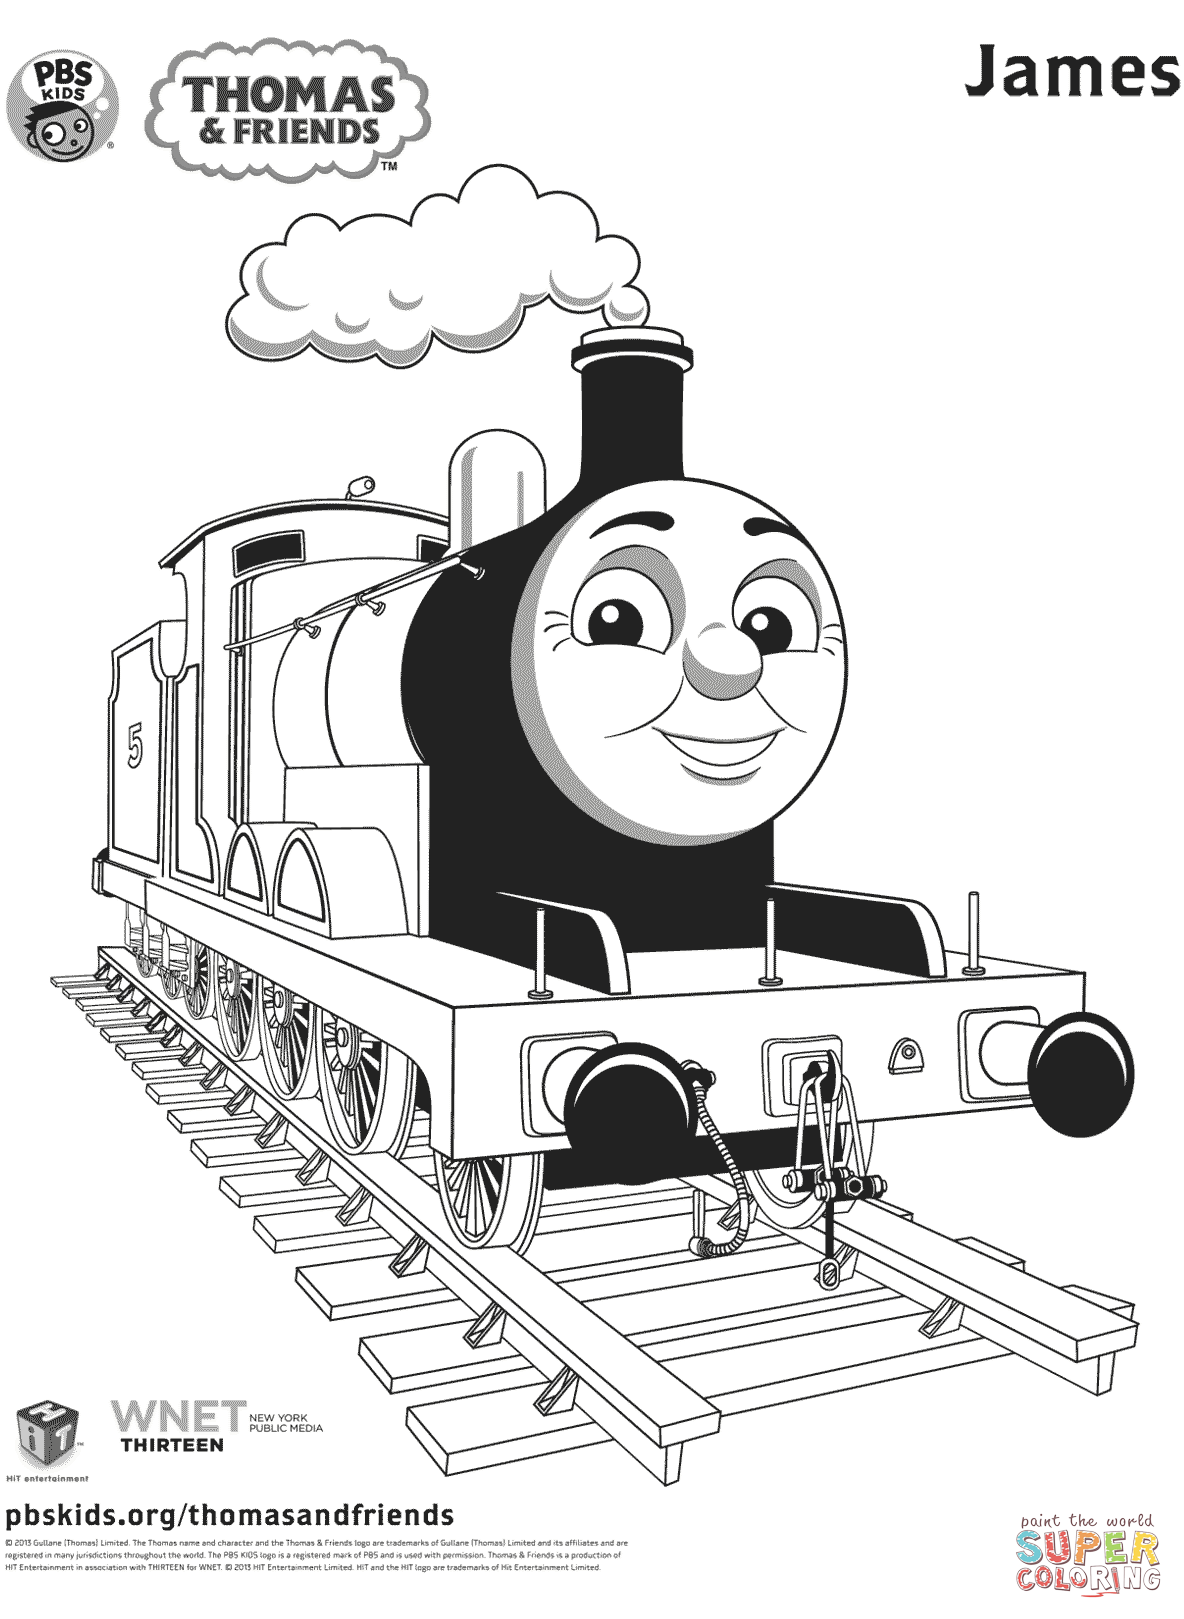 emily the tank engine coloring pages thomas coloring pages movies and tv coloring pages emily engine tank coloring the pages